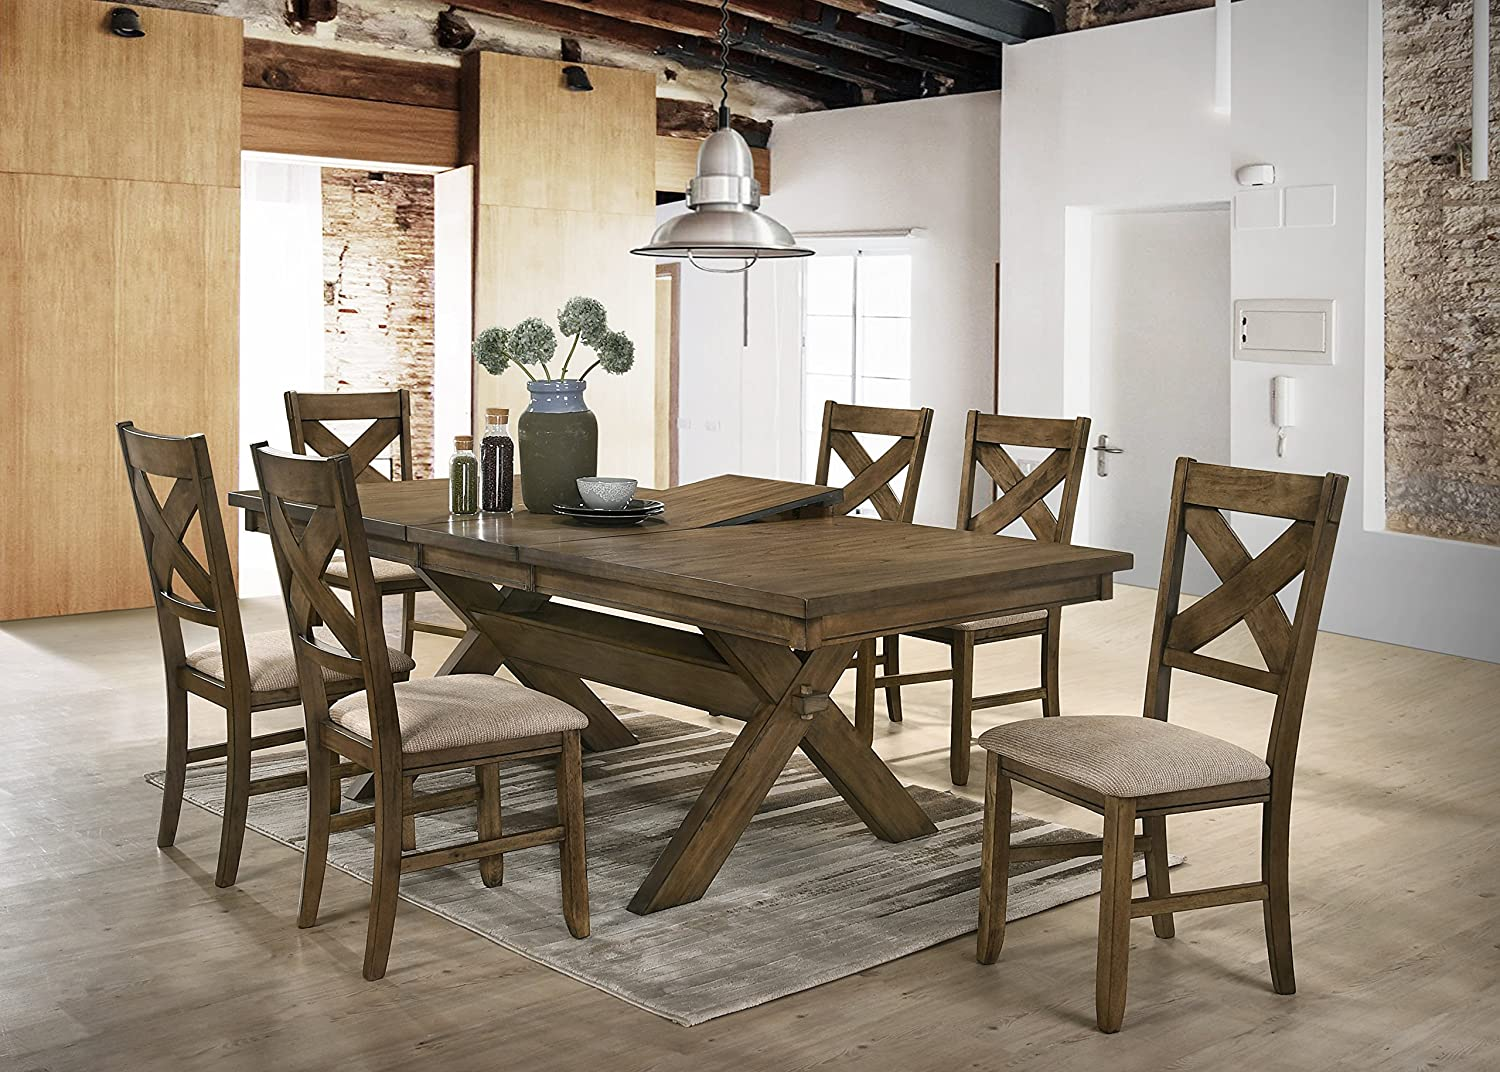 Raven Wood Dining Set: Butterfly Leaf Table, Six Chairs